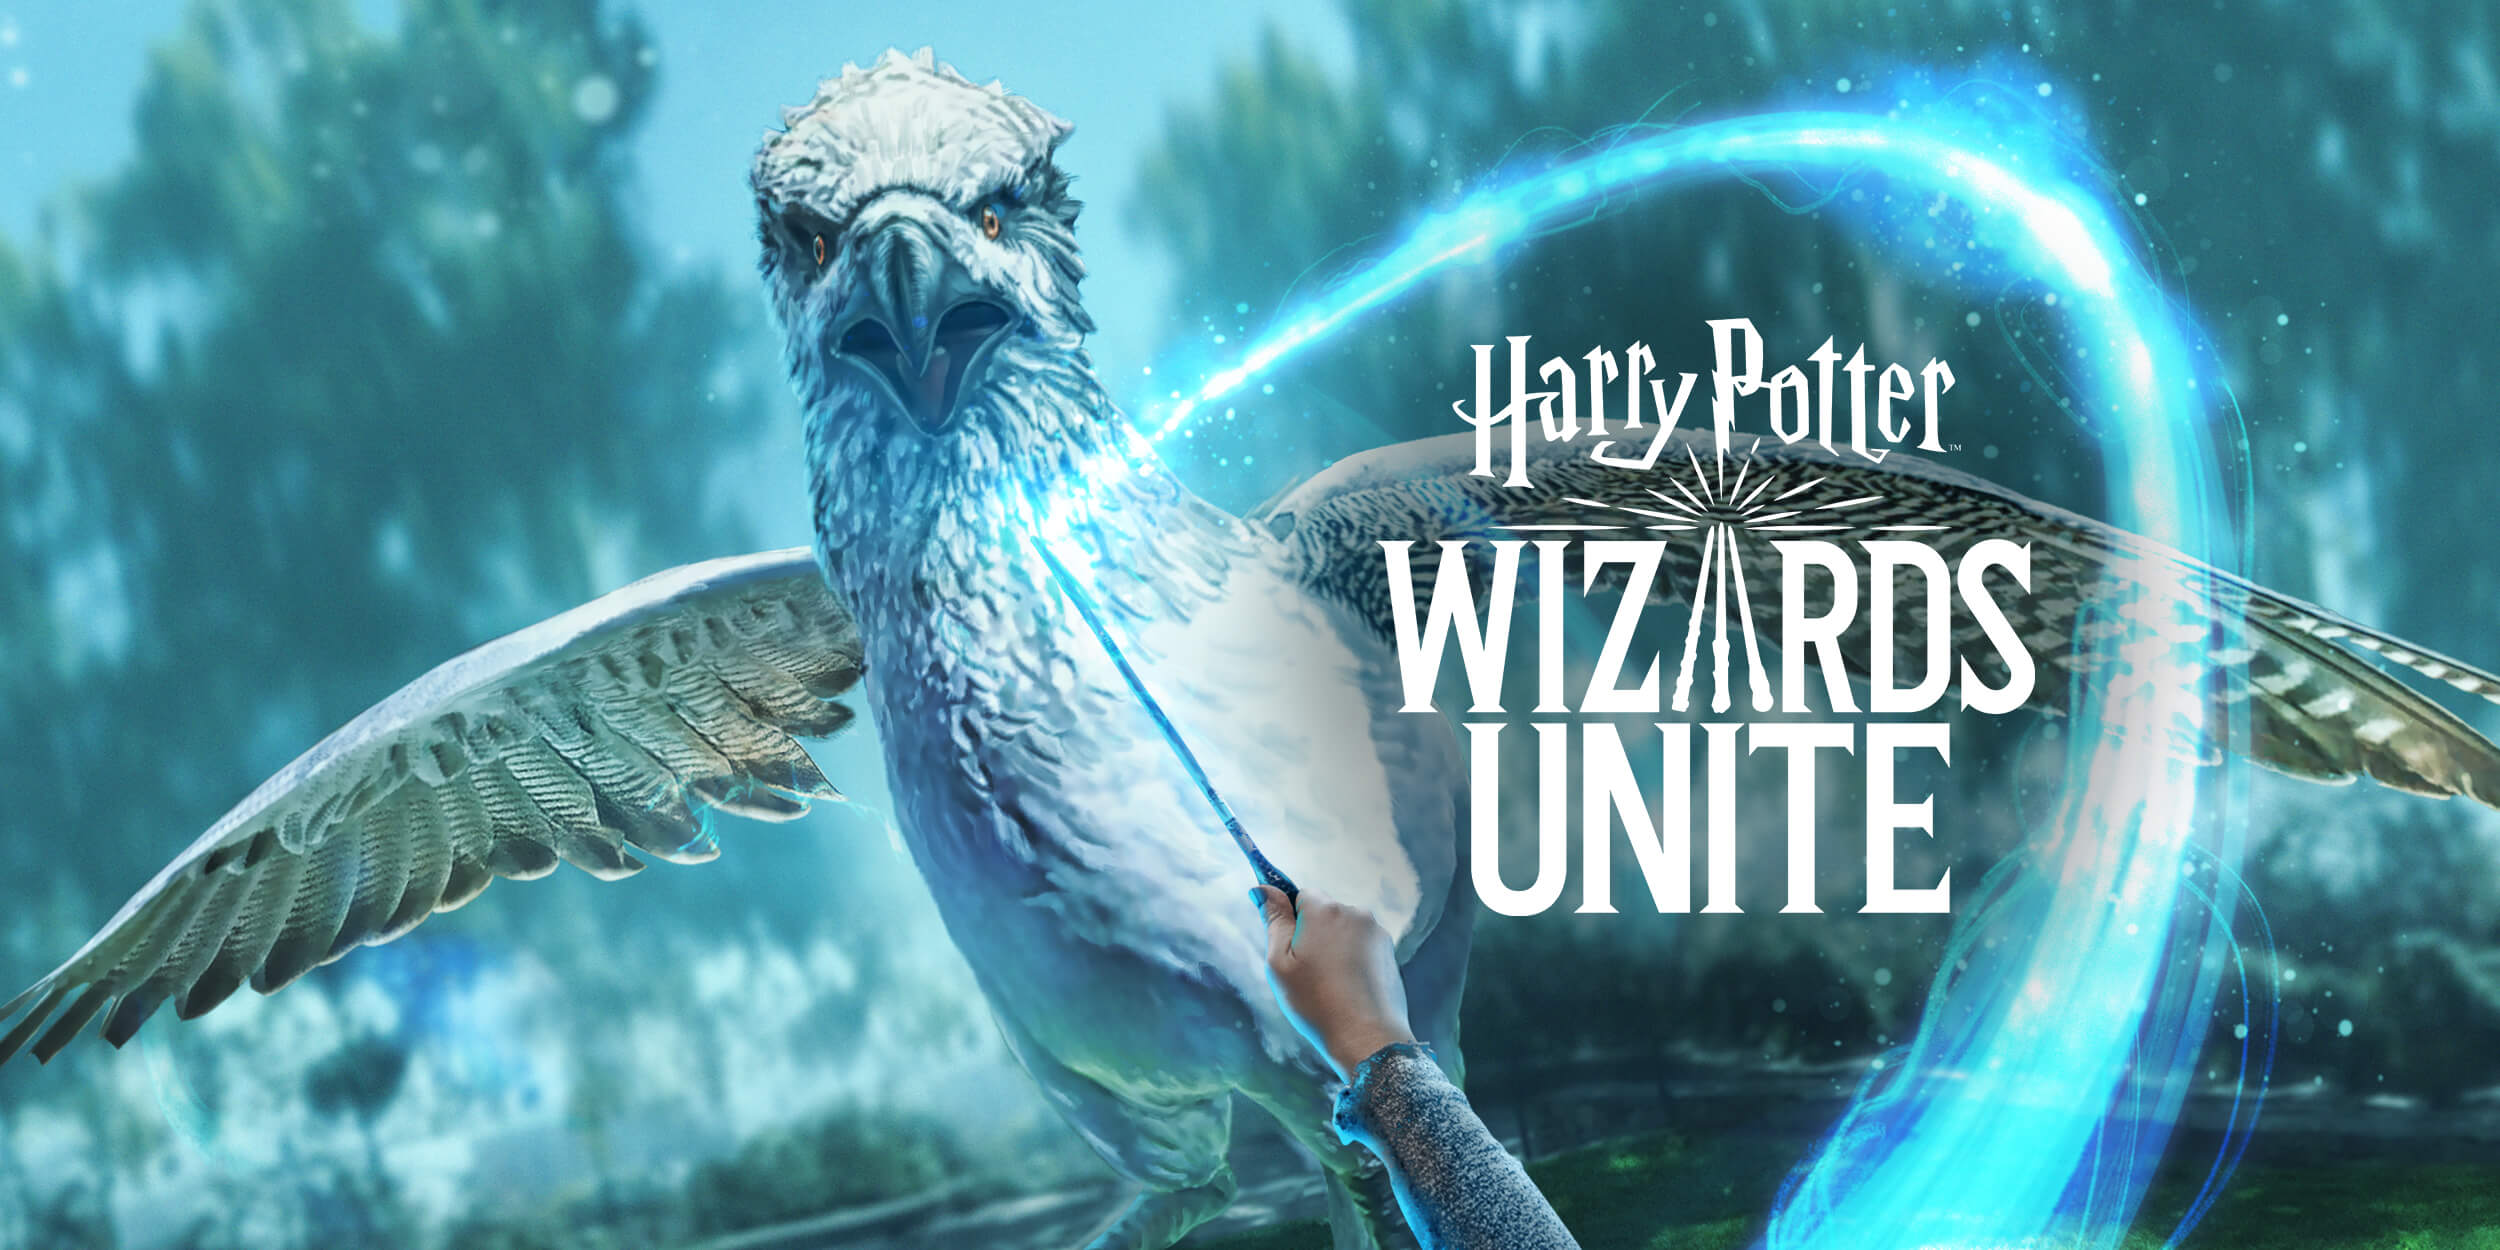 harry potter wizards unite community day july 20 what to expect Pokemon go fundable experience dark detectors